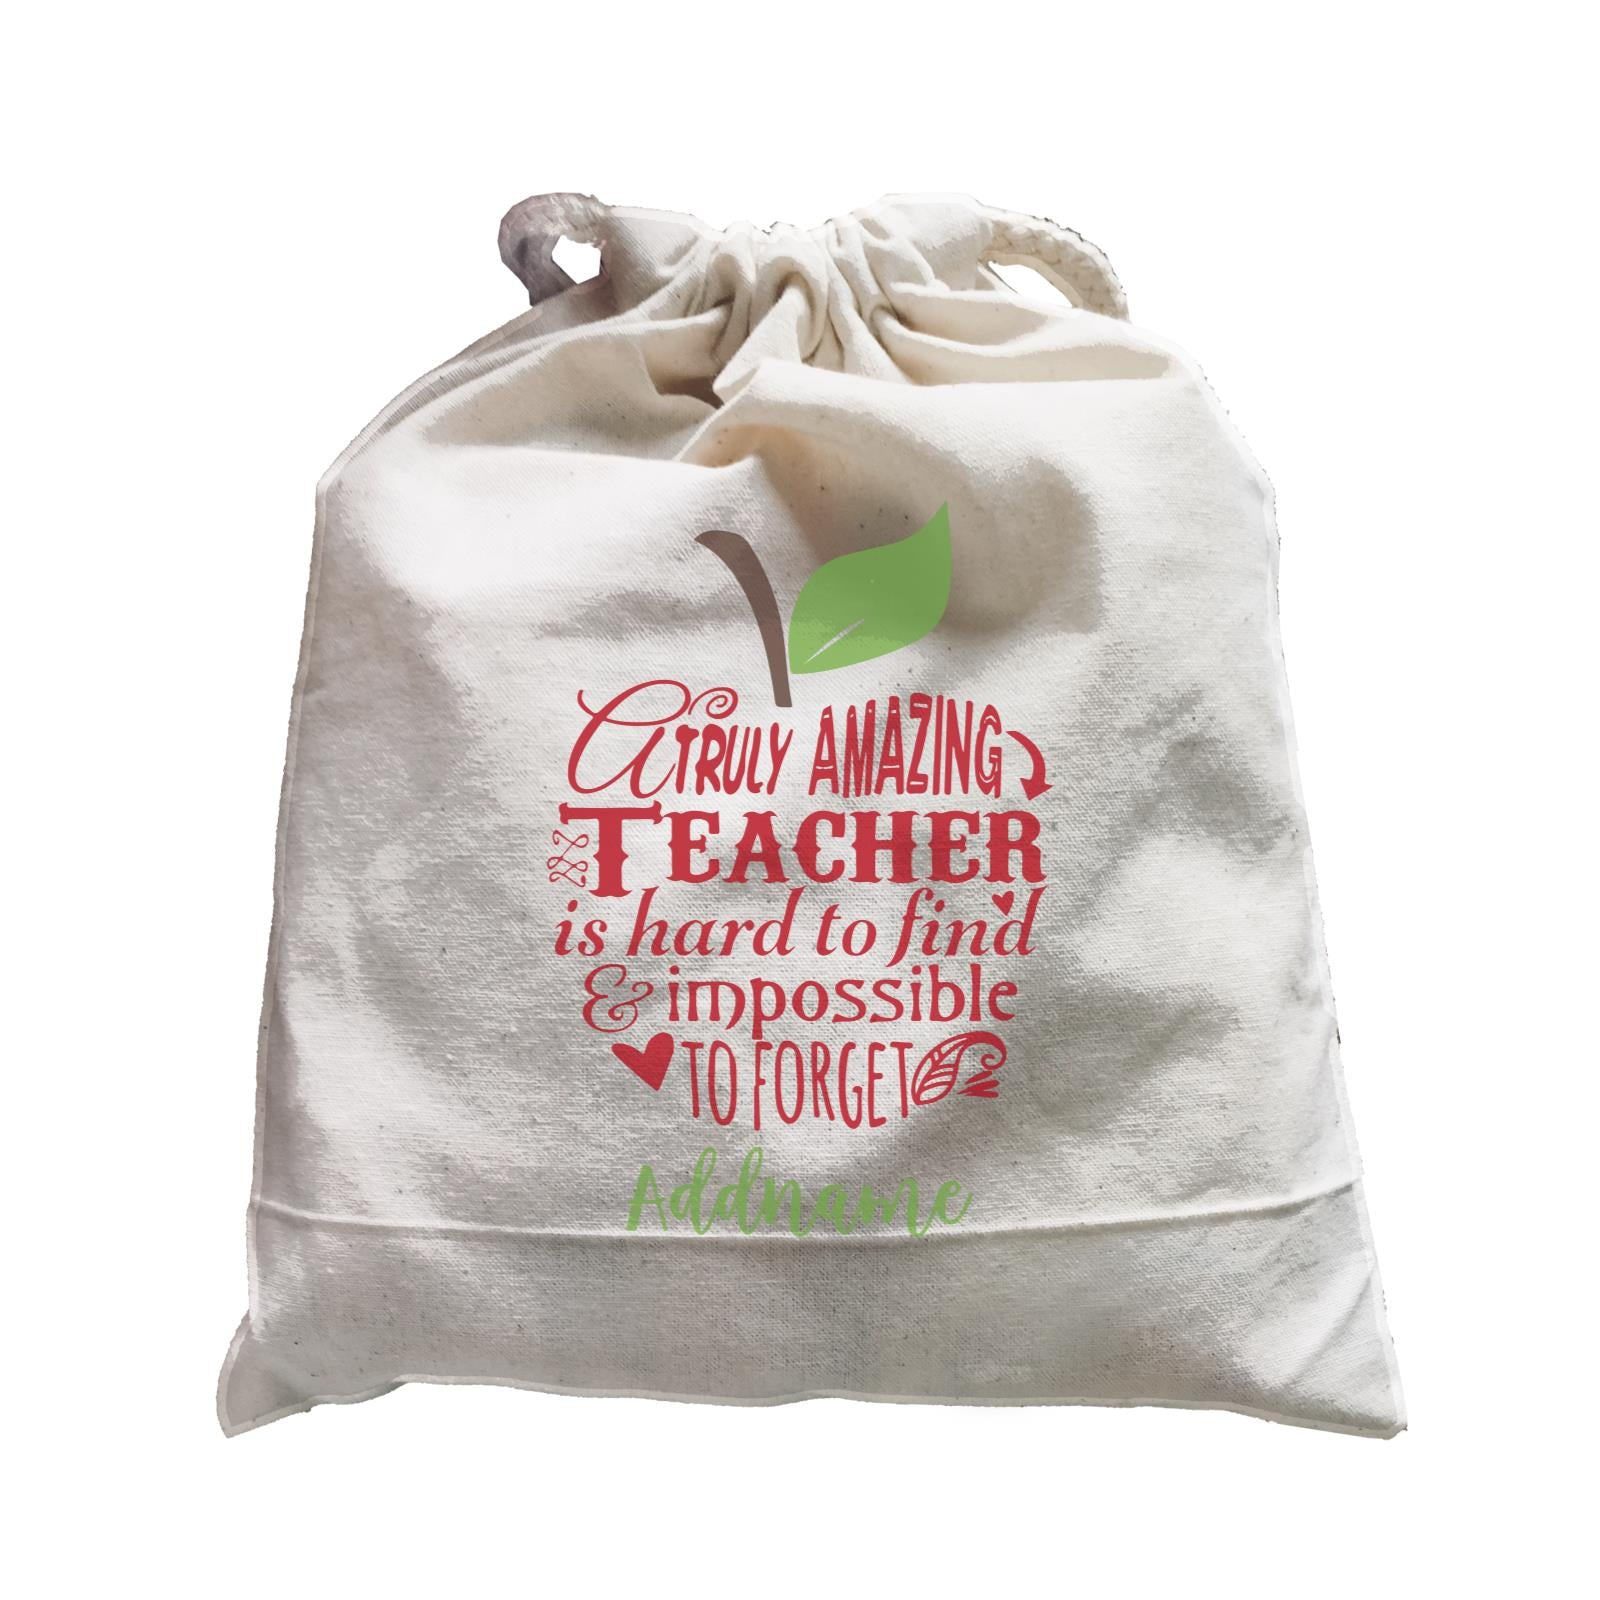 Teacher Apple Truly Amazing Teacher is Had To Find & Impossible To Forget Addname Satchel